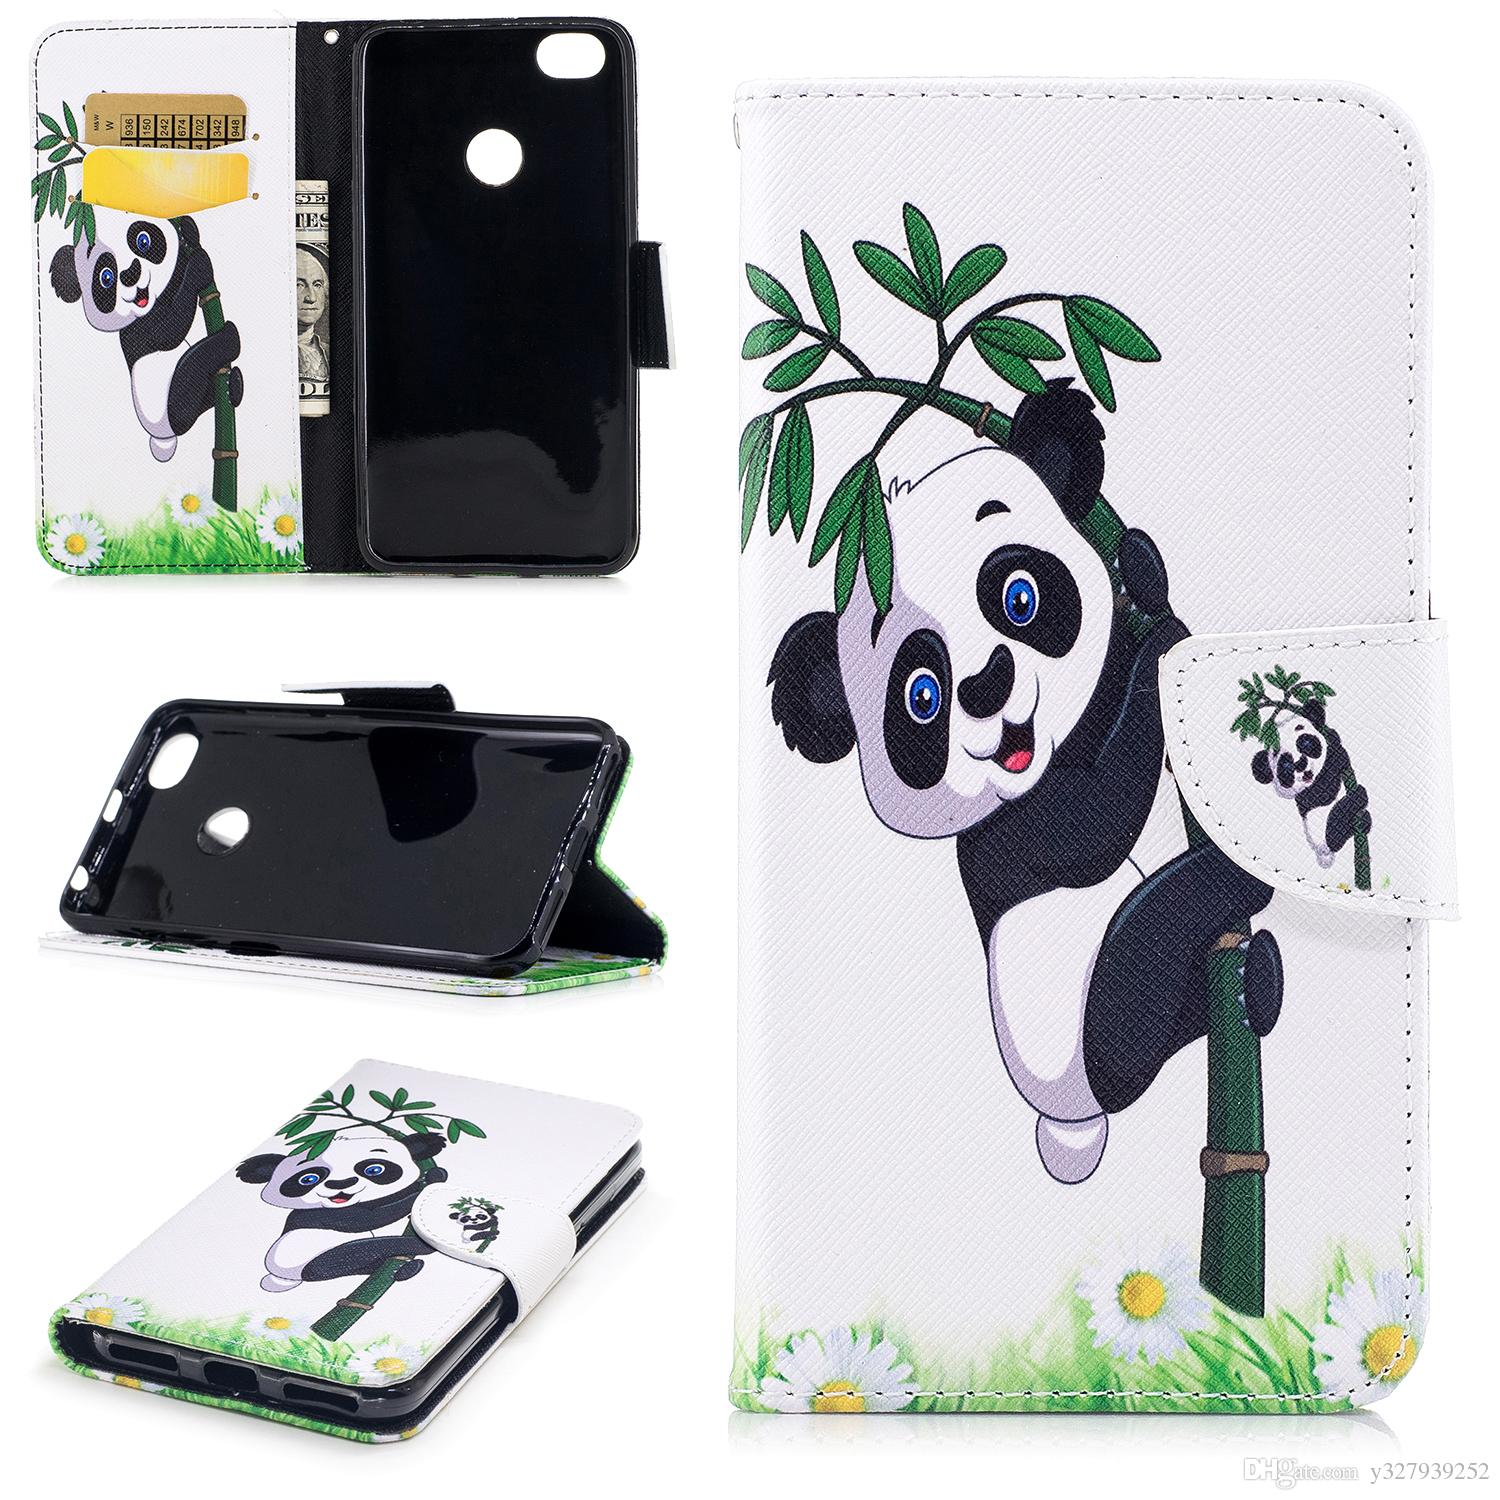 Flip Case For Xiaomi Redmi Note 5a Note5 A Mde6s Mdt6s Mde6 For Xiaomi Redmi Note 5a Dual Sim Td Lte Mdt6 Printing Phone Cove Best Cell Phone Cases Top